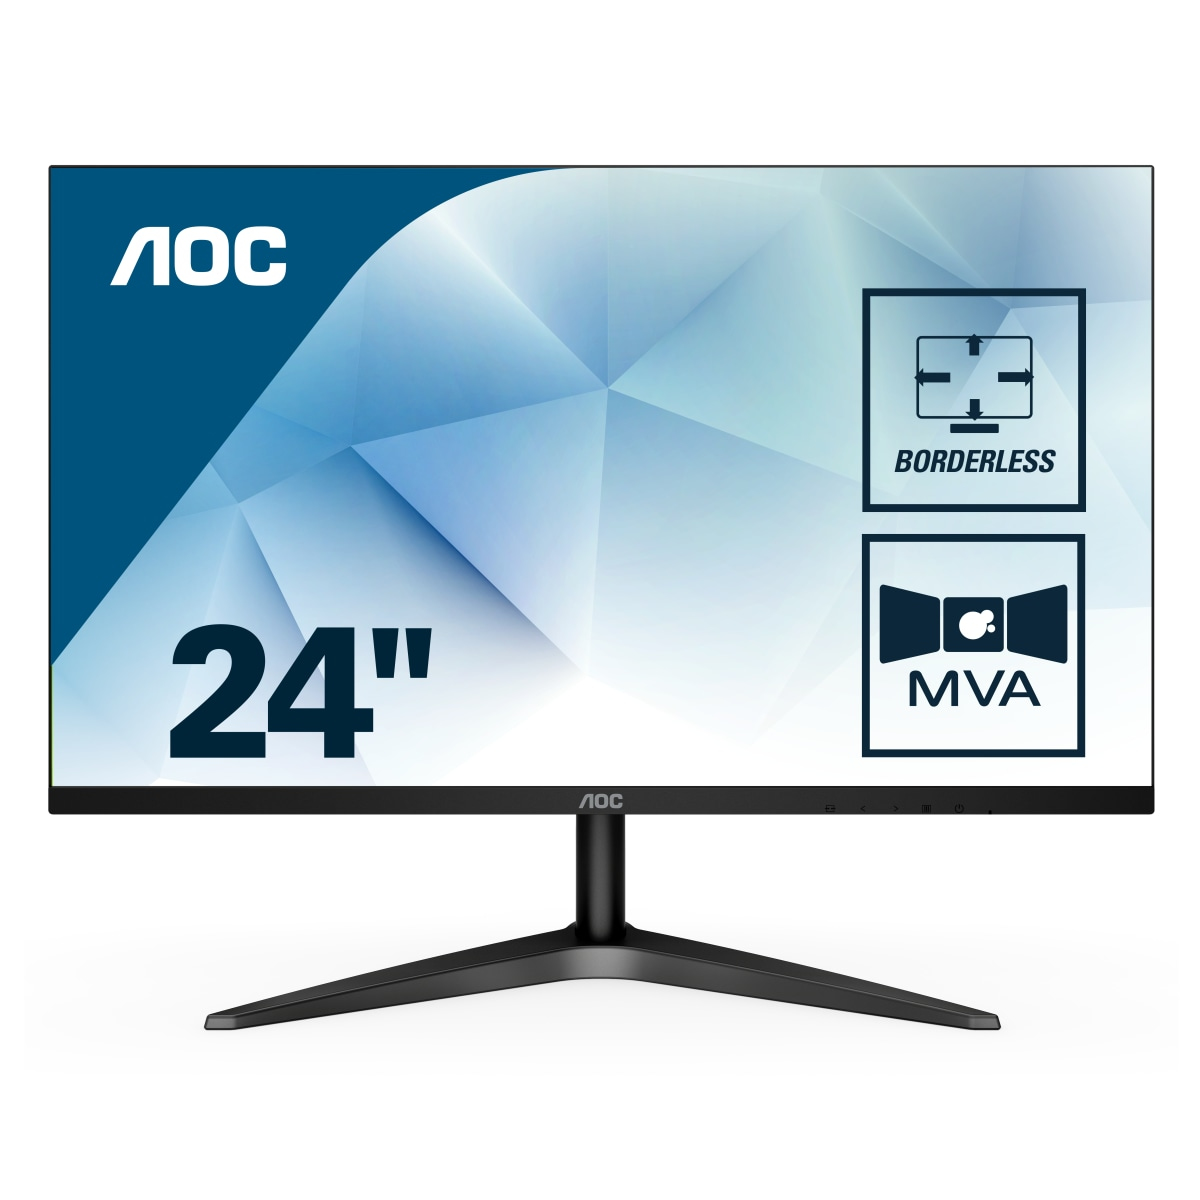 Desktop Monitor - 24B1H - 23.6in - 1920x1080 (Full HD) - 8ms